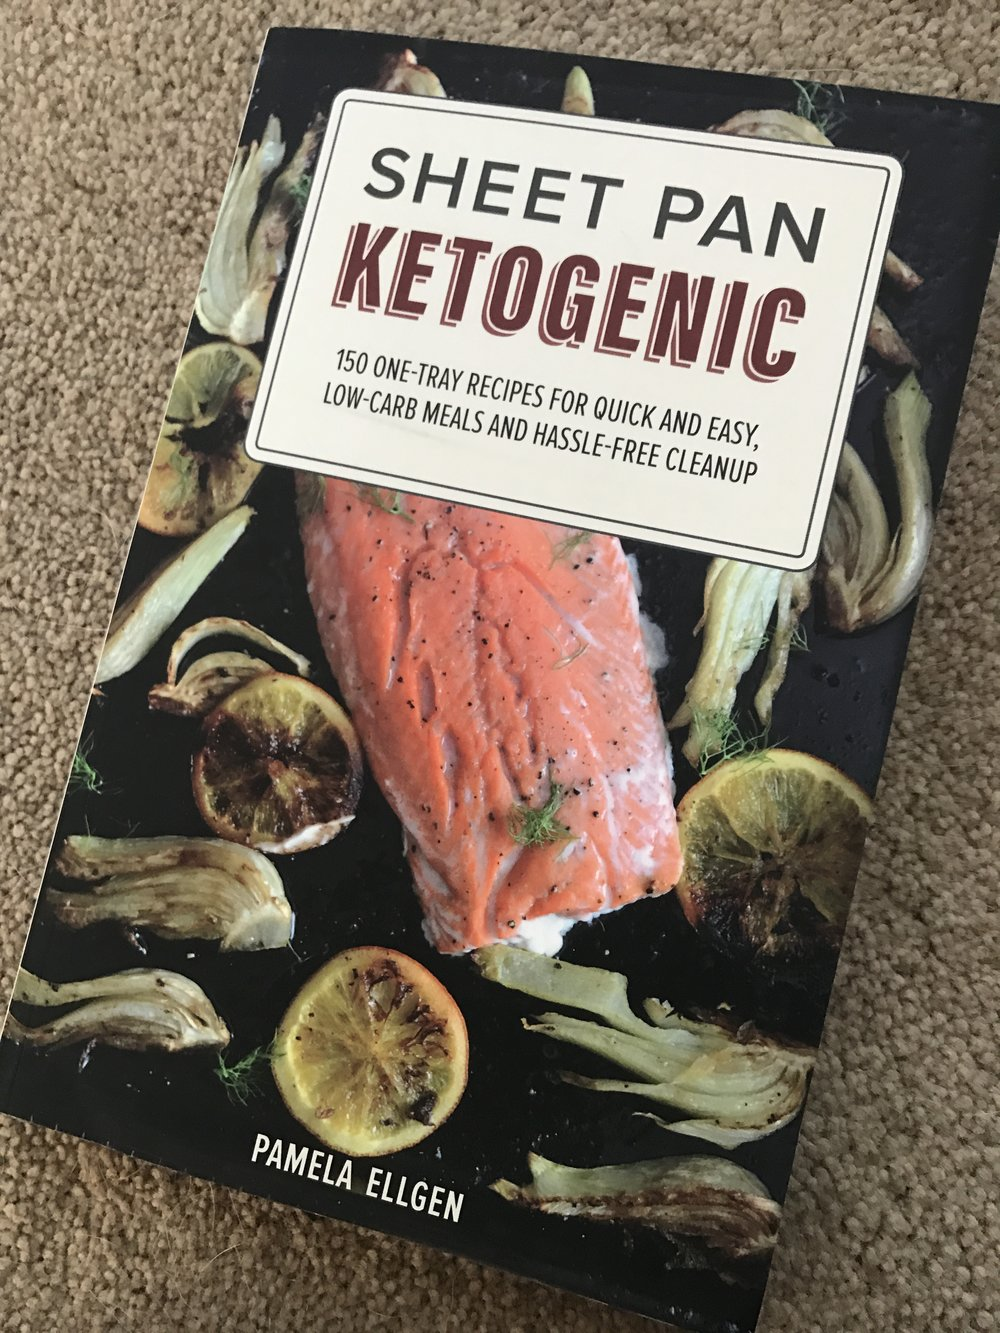 sheet pan ketogenic